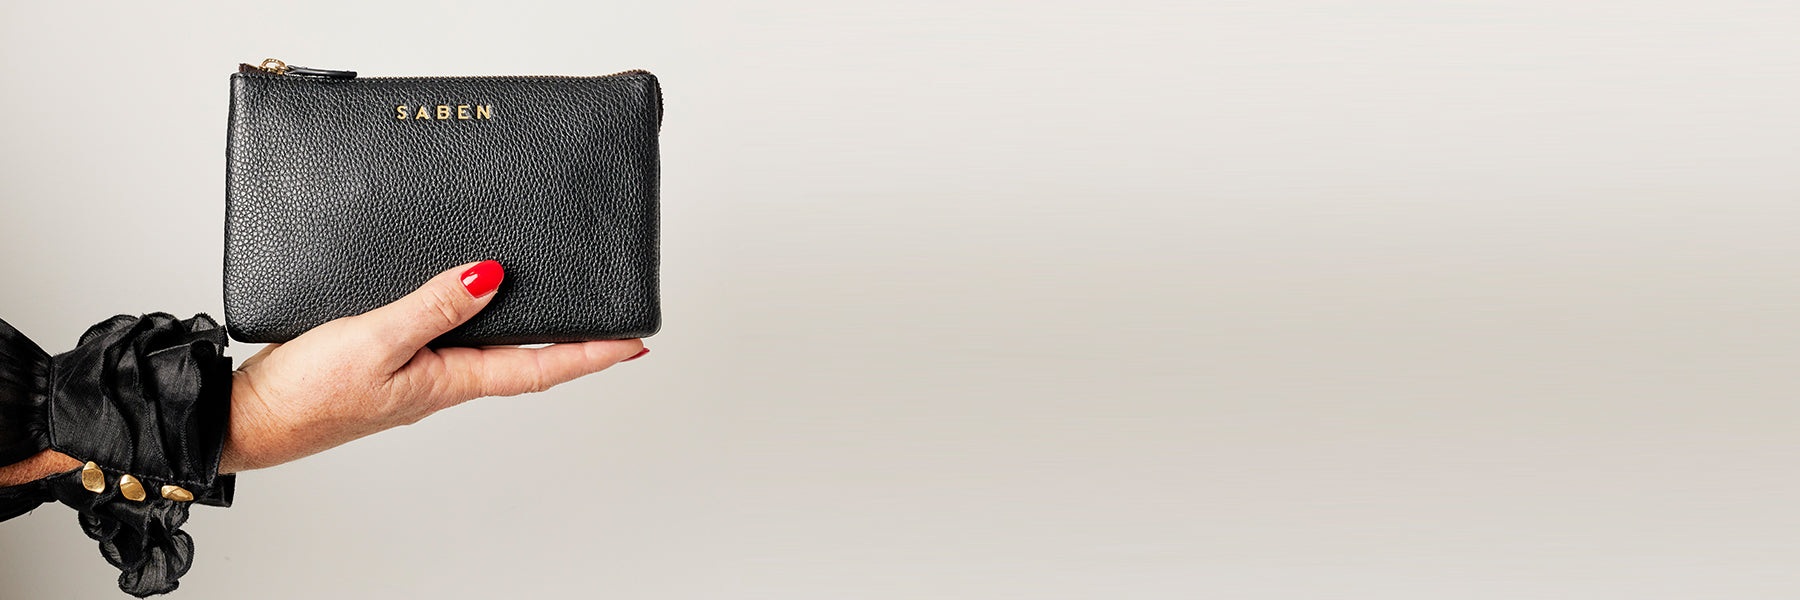 Wearable Wallets